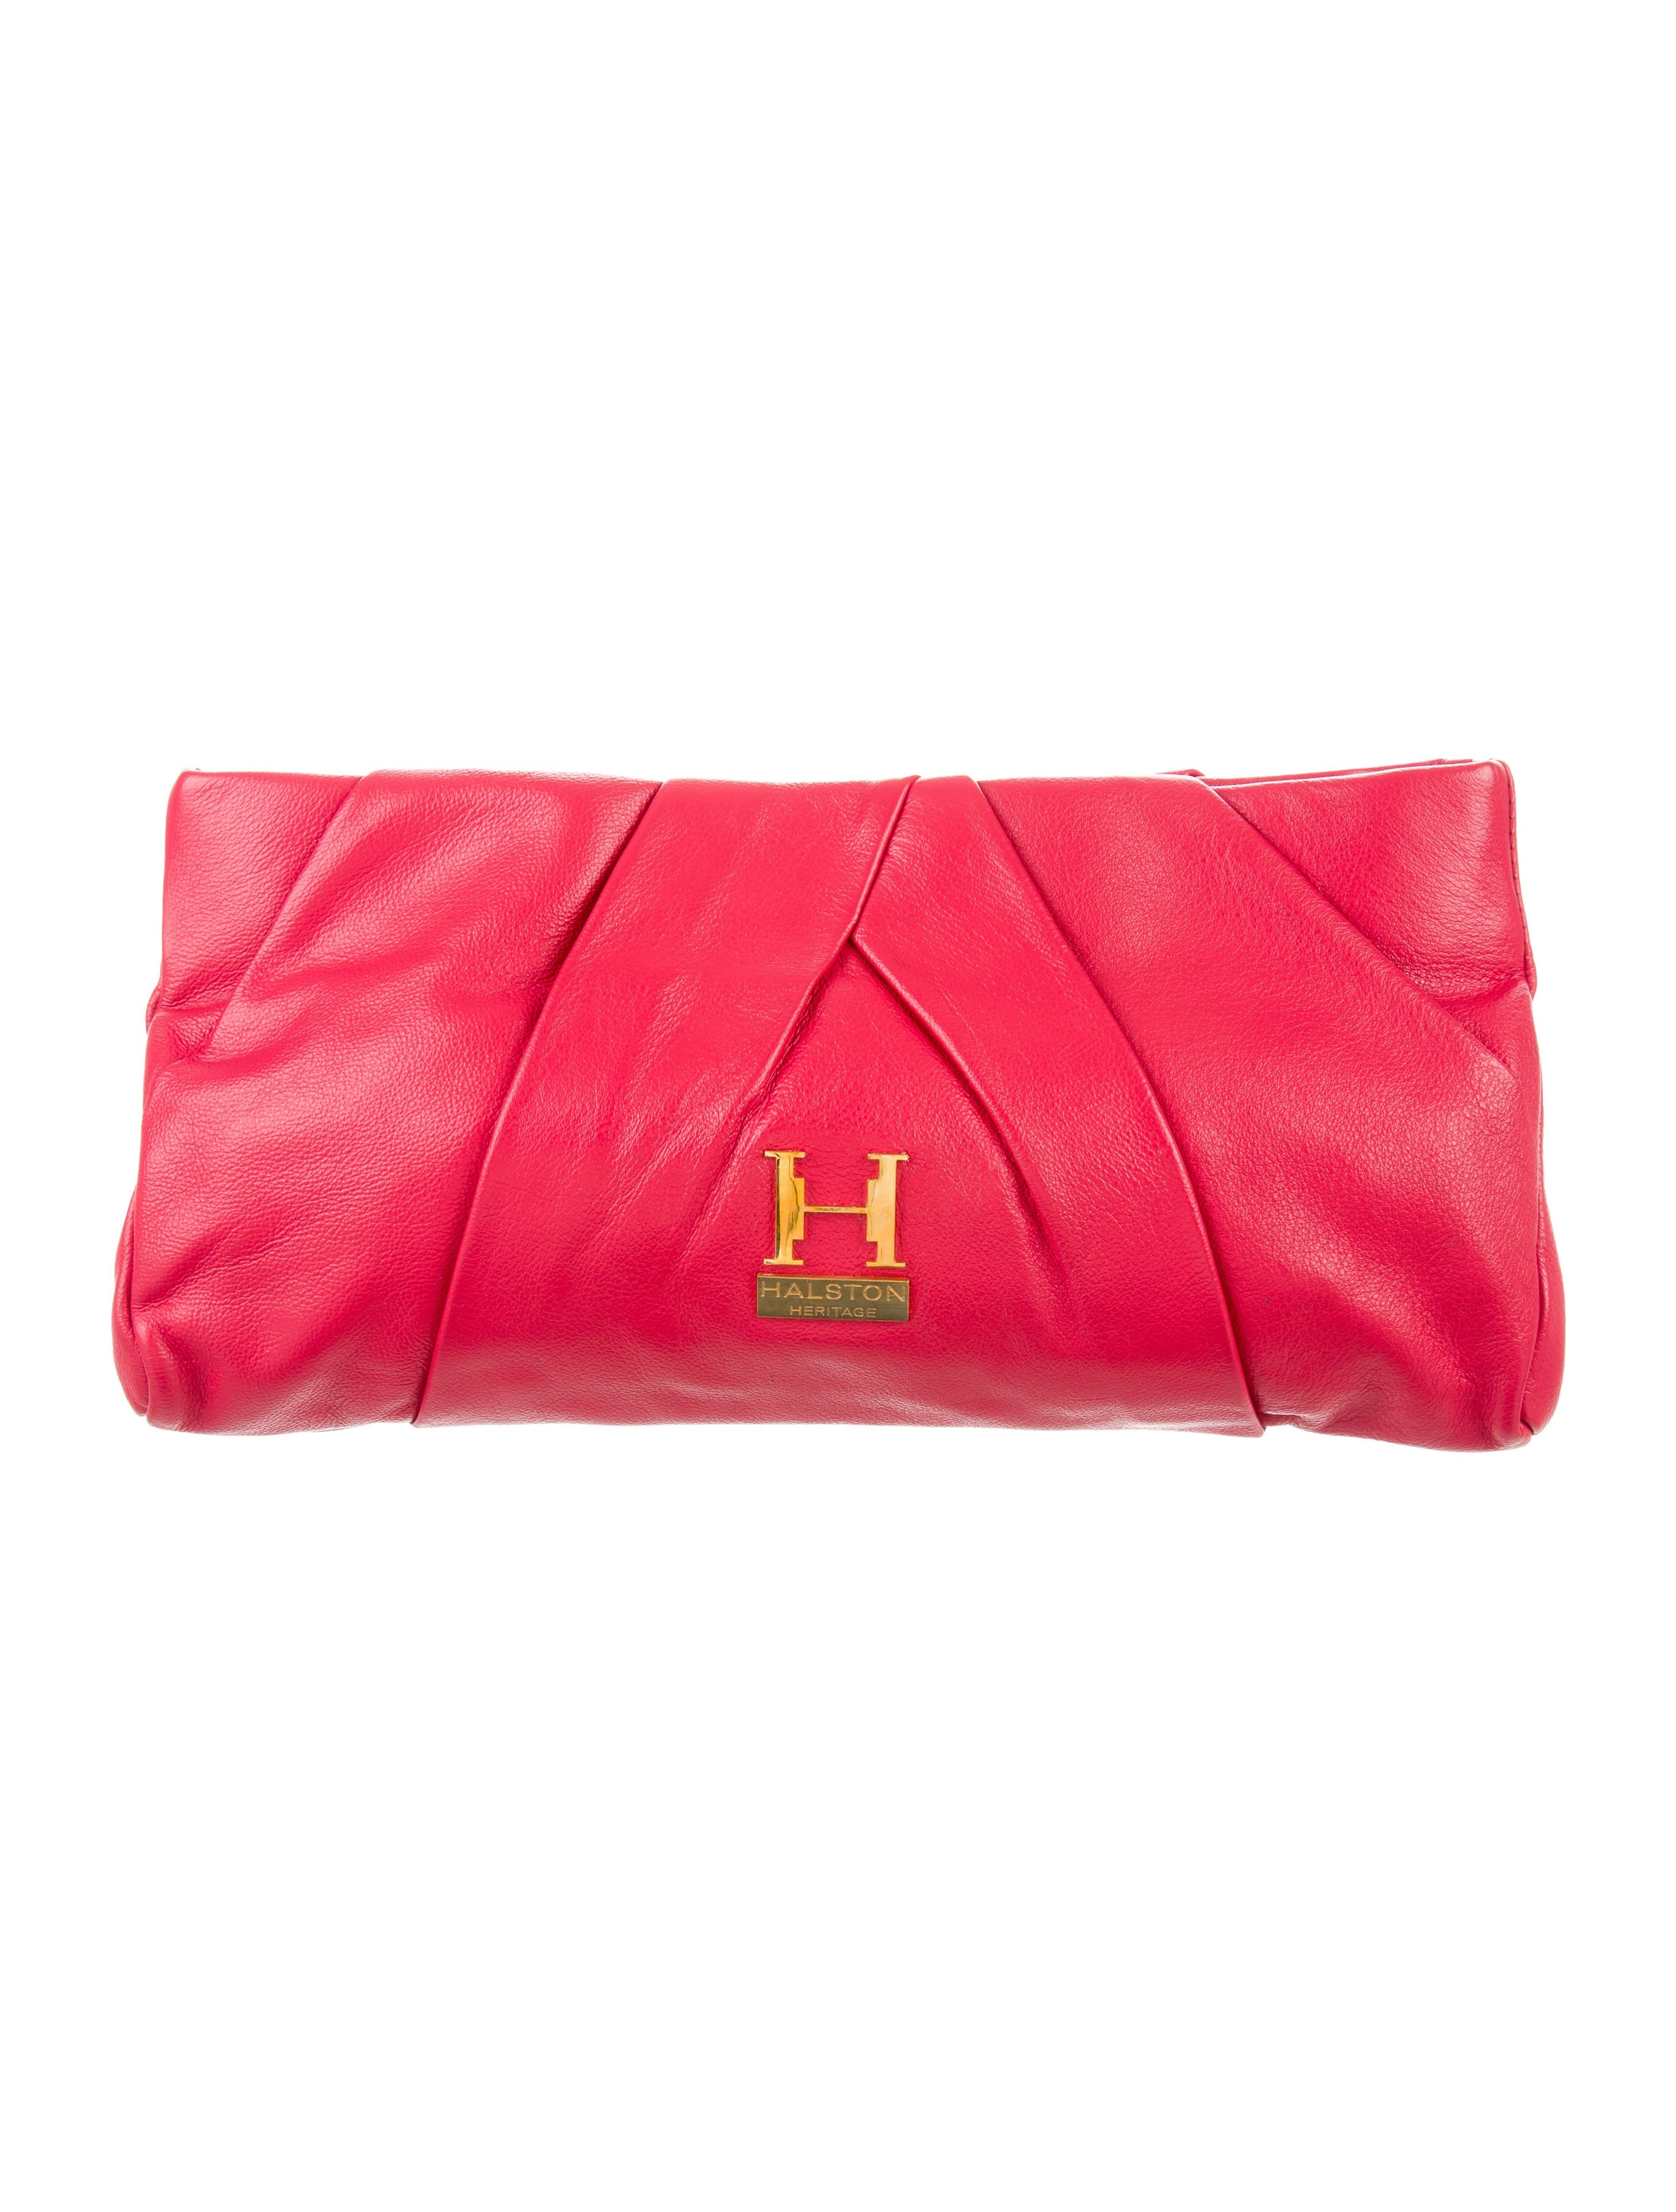 Halston Heritage Pleated Alice Clutch - Handbags - WH126350  9c66d4fbdfbb8